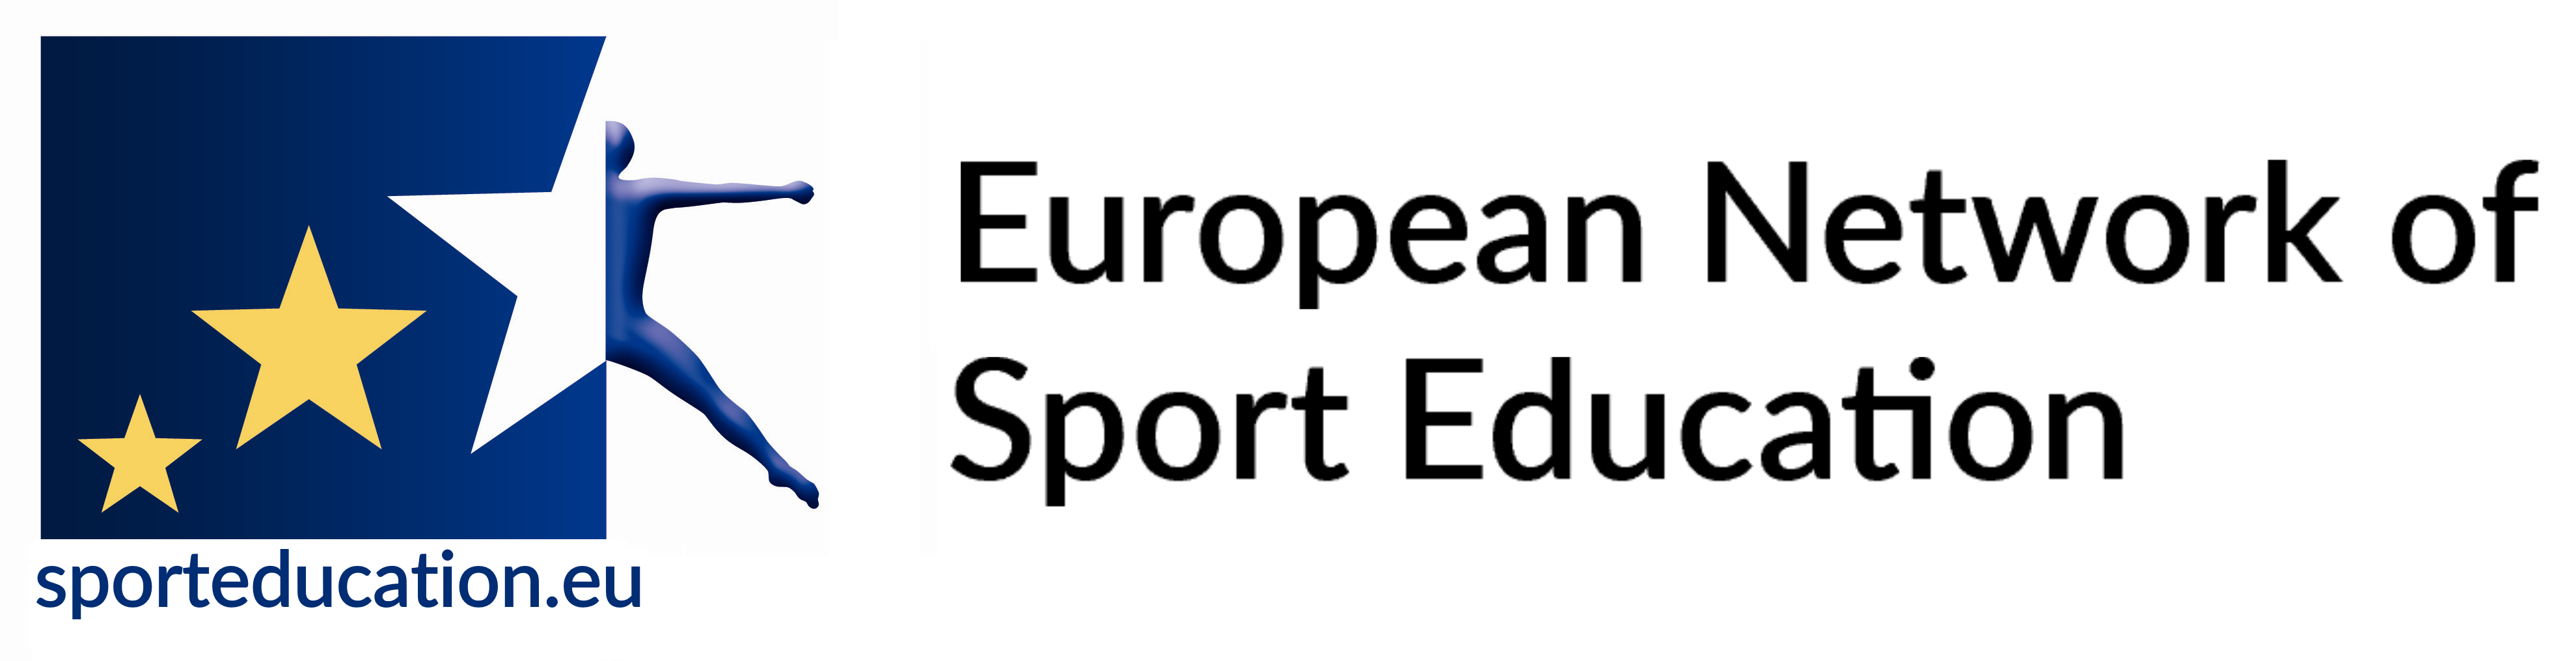 European Network of Sport Education